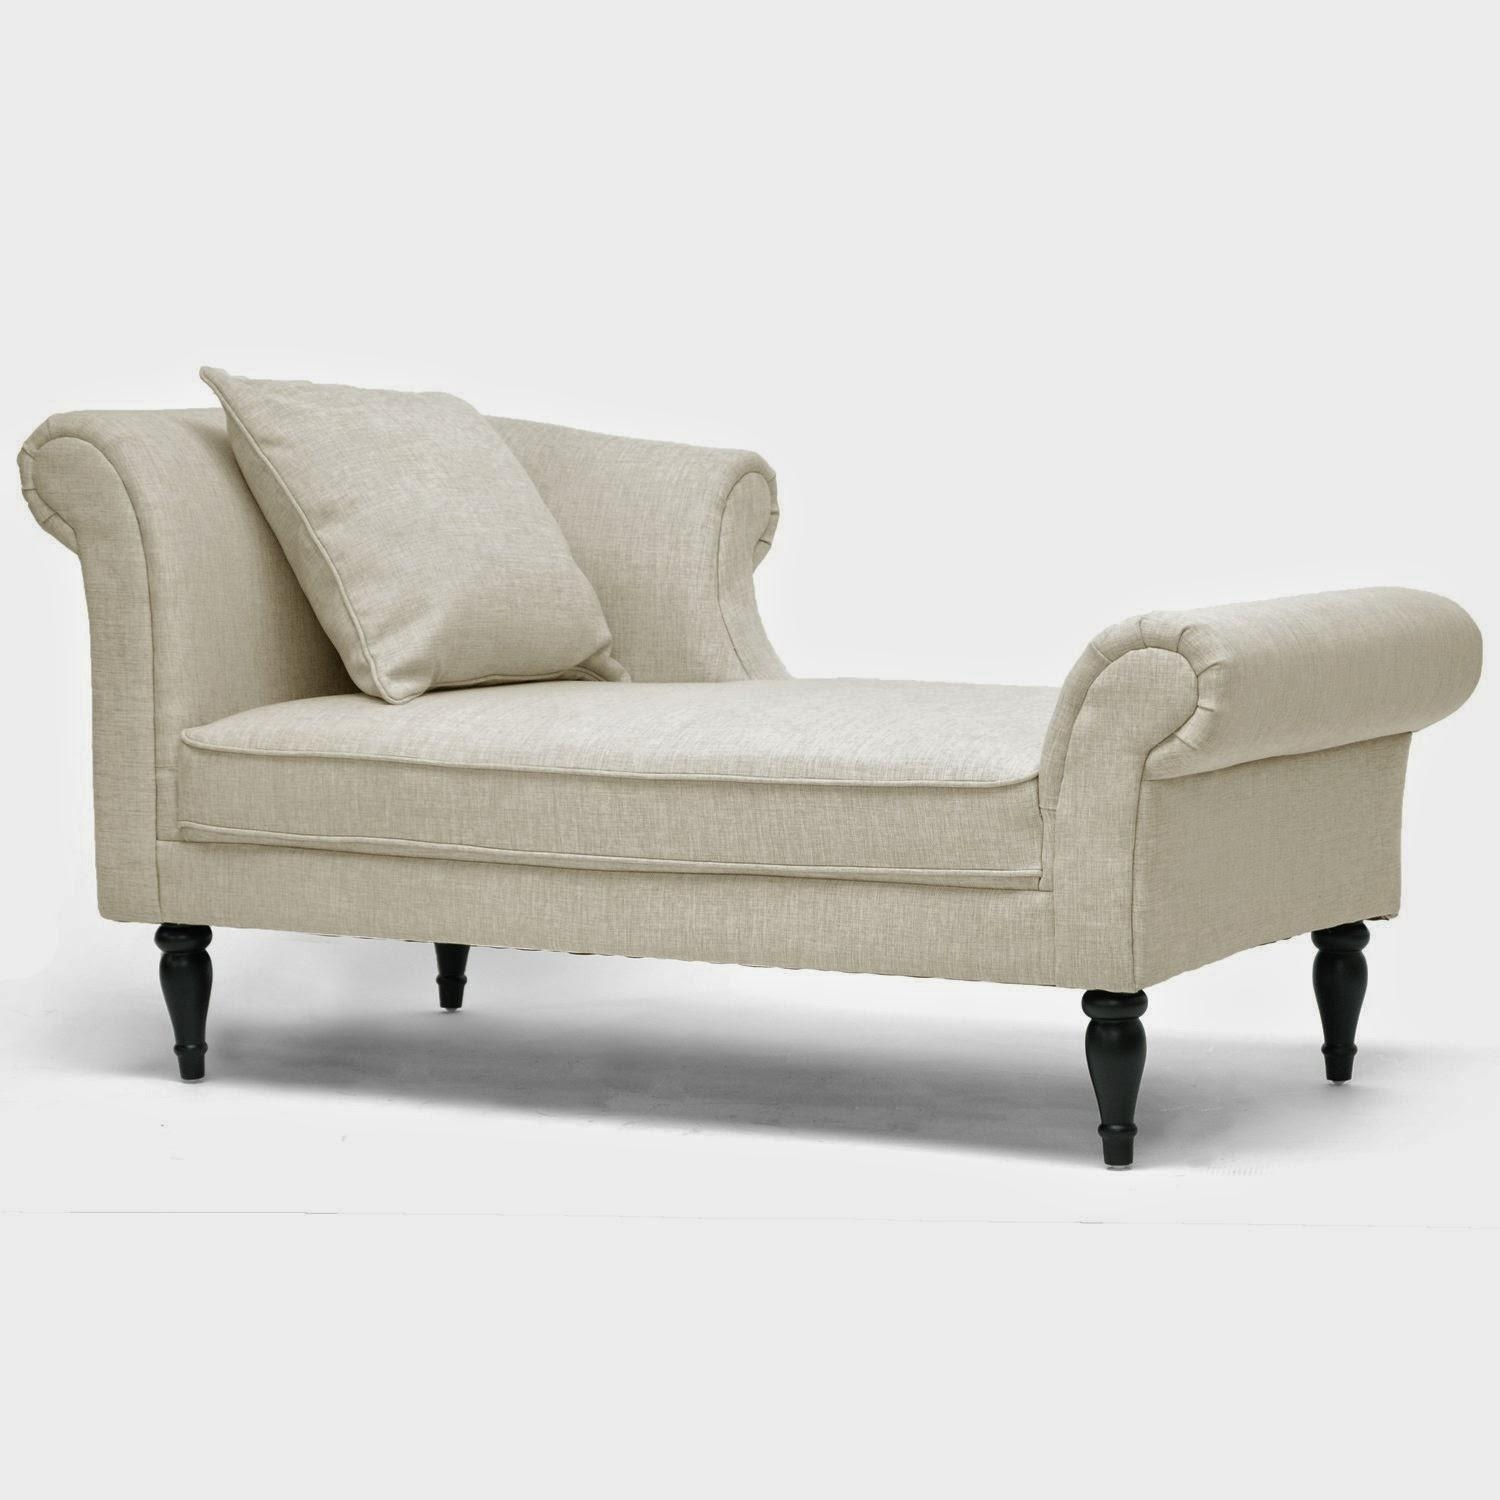 Fainting Sofa For Sale Hawthorne Chaise Lounge Wayfair (View 14 of 20)